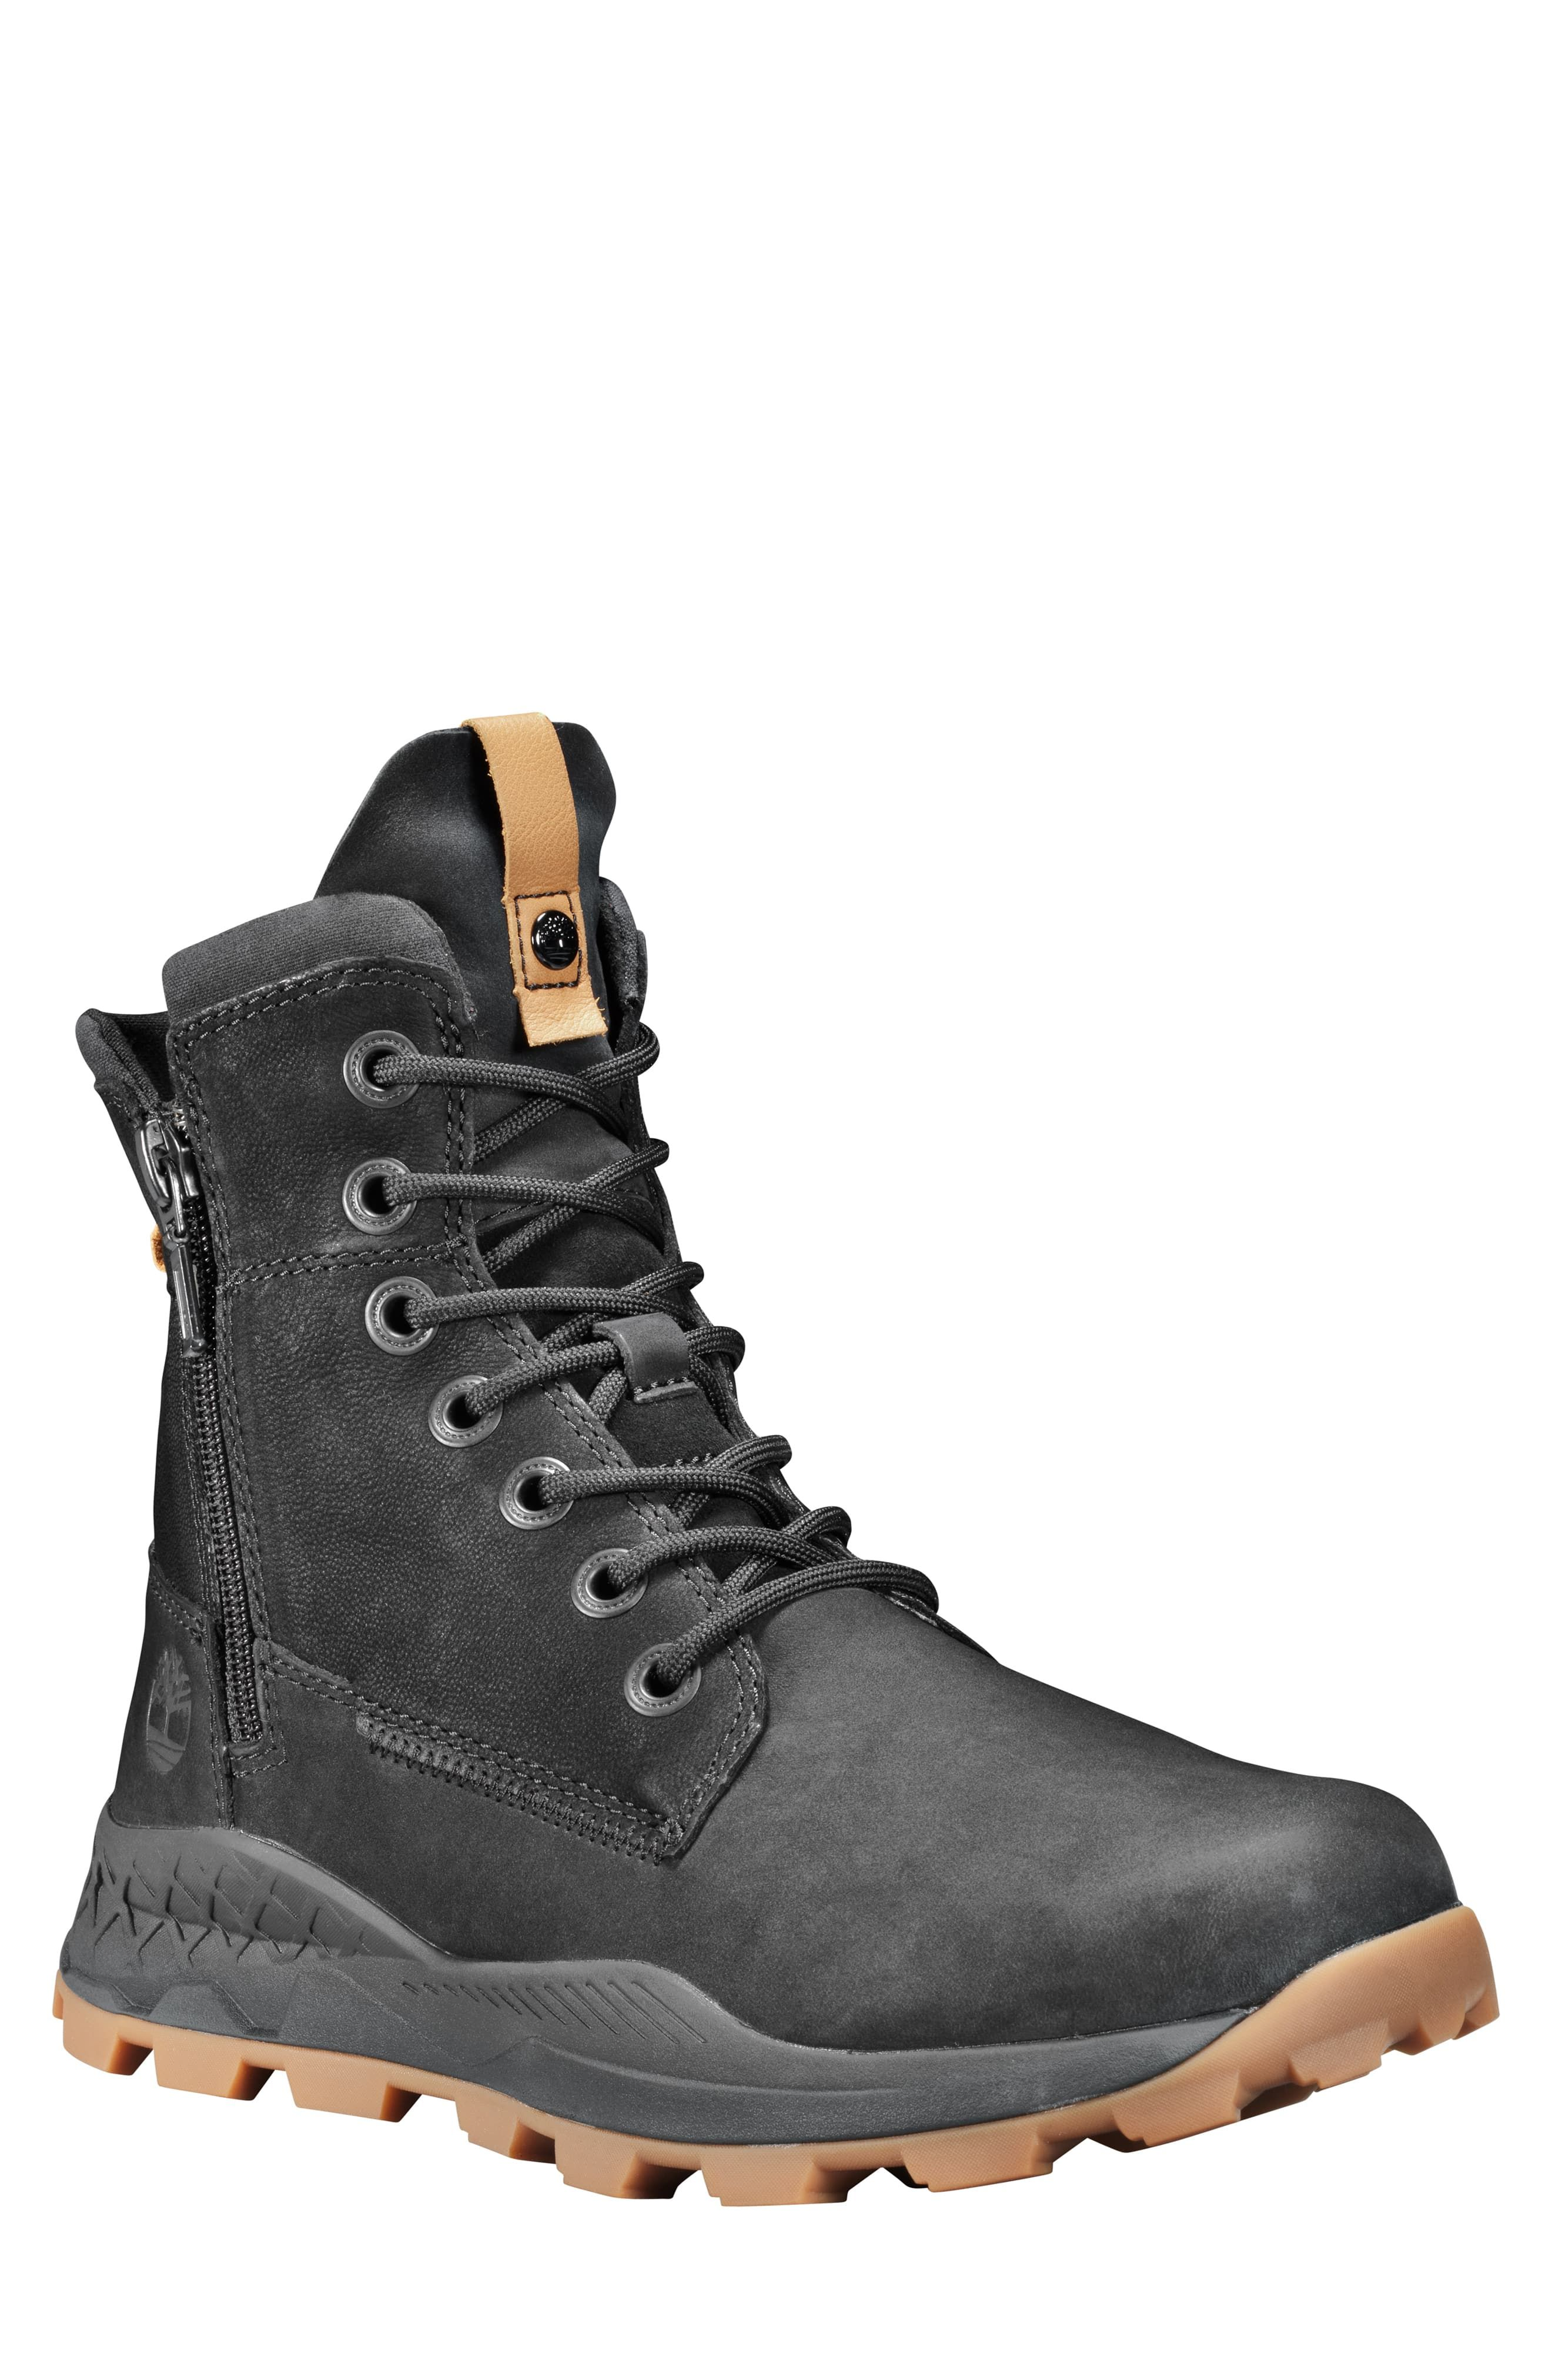 TImberland Men's Hommes Black Yellow Size UK 8.5 Shoes Sneakers Boots